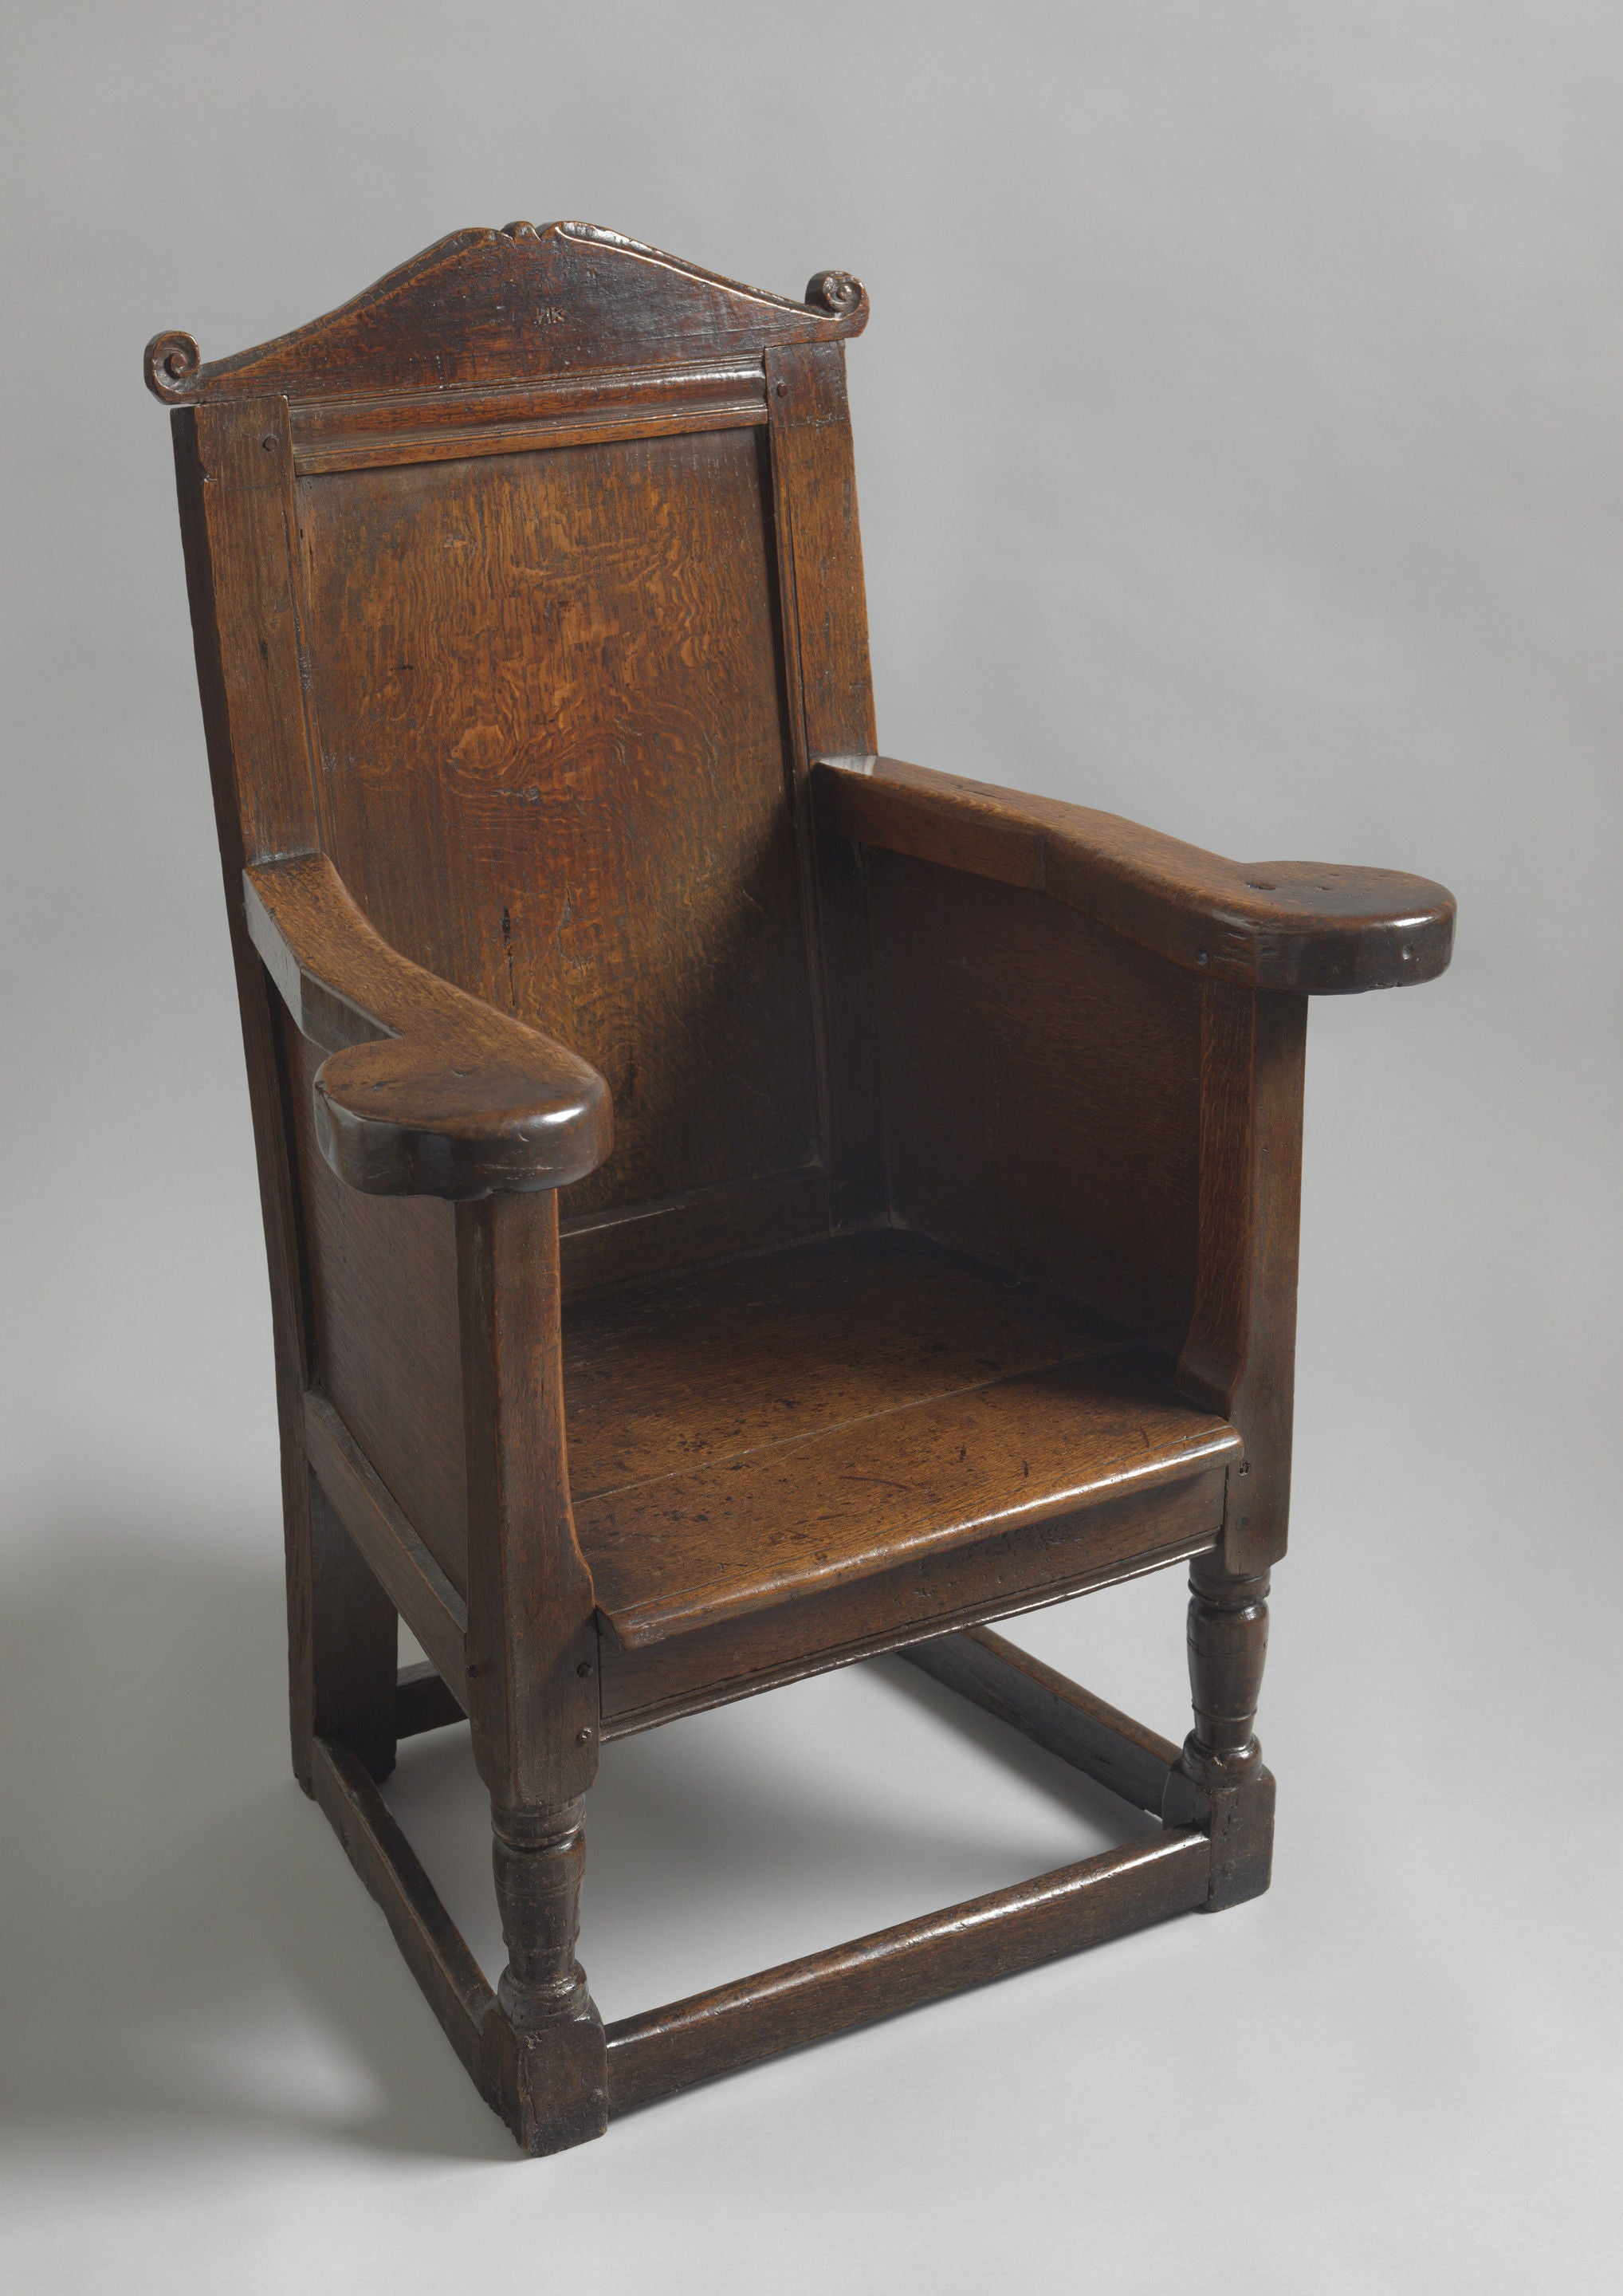 Significant Puritan Chair